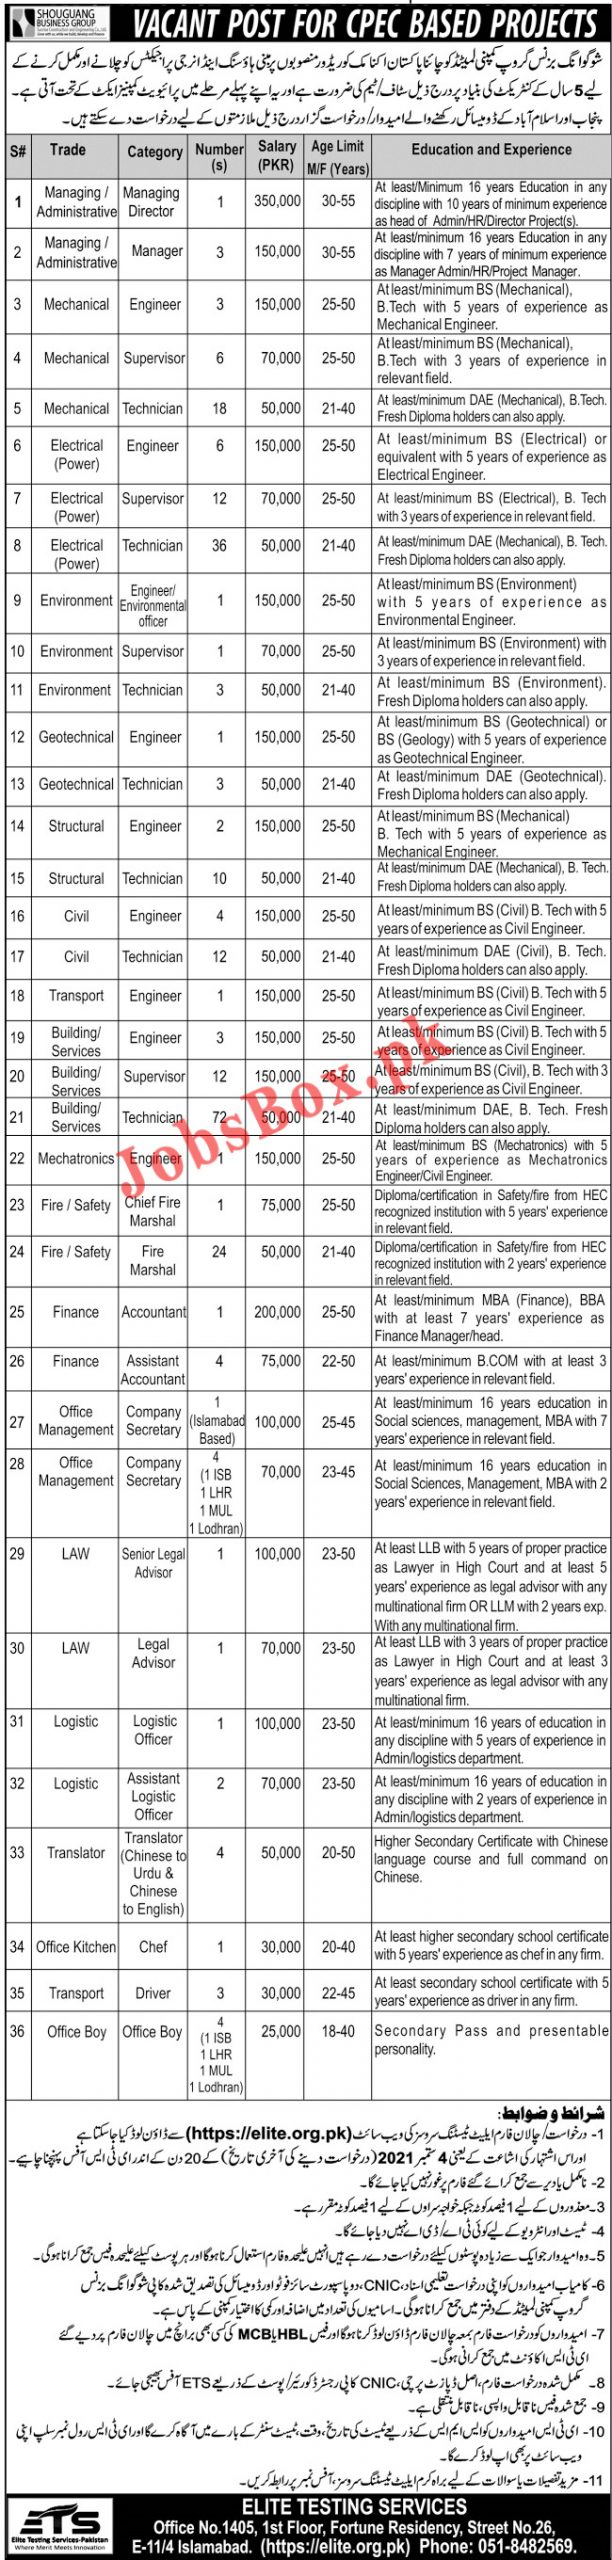 Shouguang Business Group Company Jobs 2021 - CPEC Project Jobs via ETS